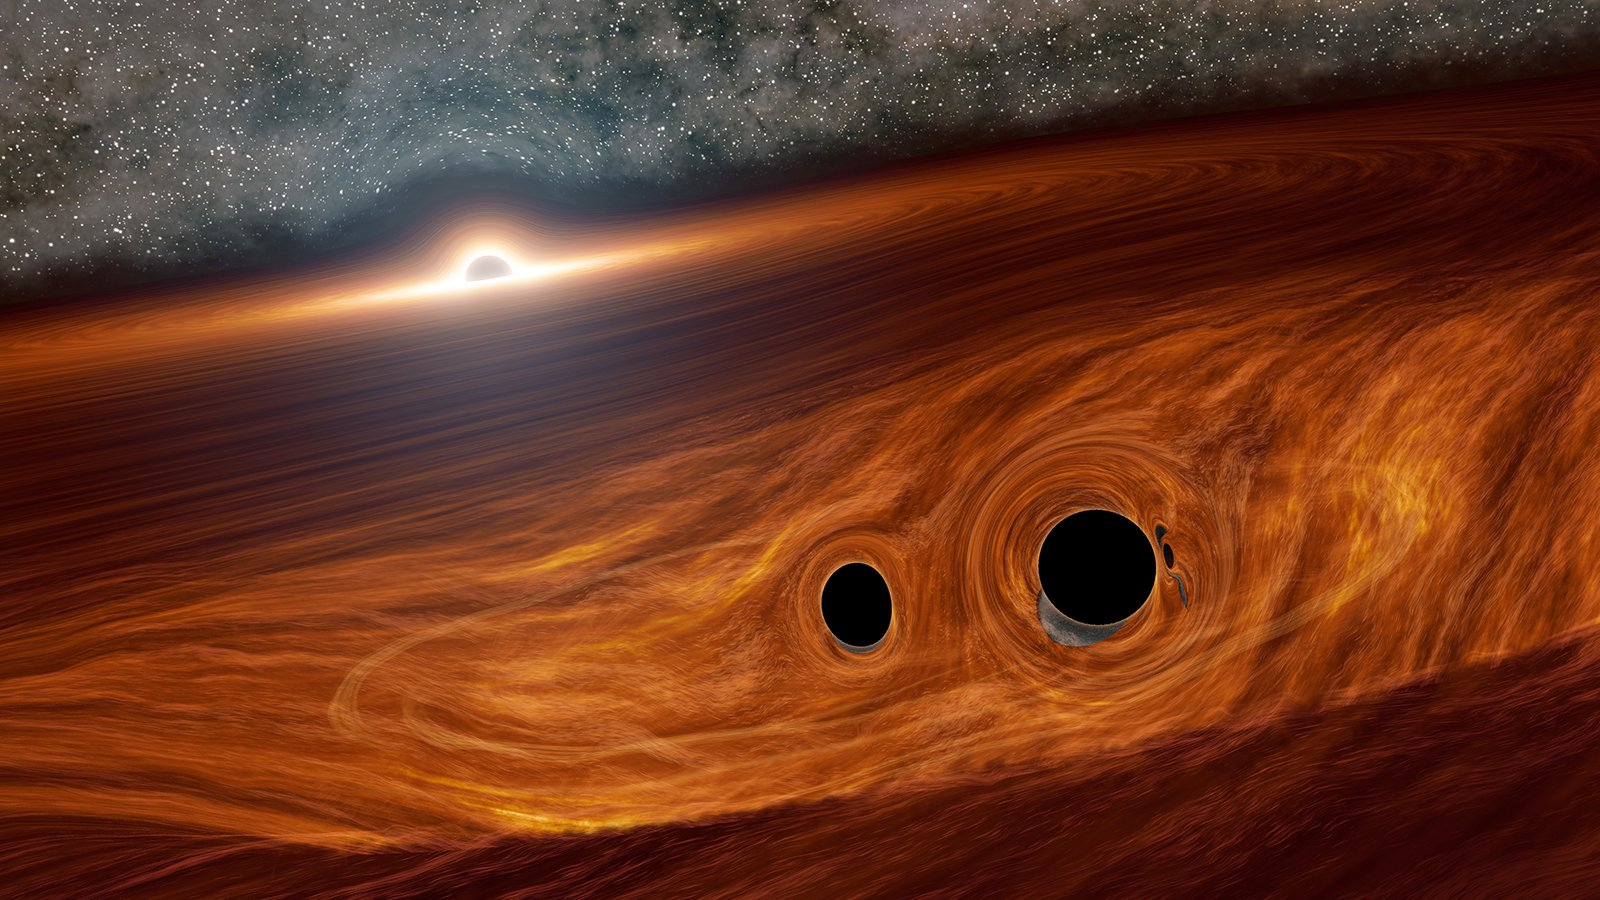 Two black holes are embedded in a large dense disk around an AGN. A third, supermassive black hole is at the center of the AGN disk.